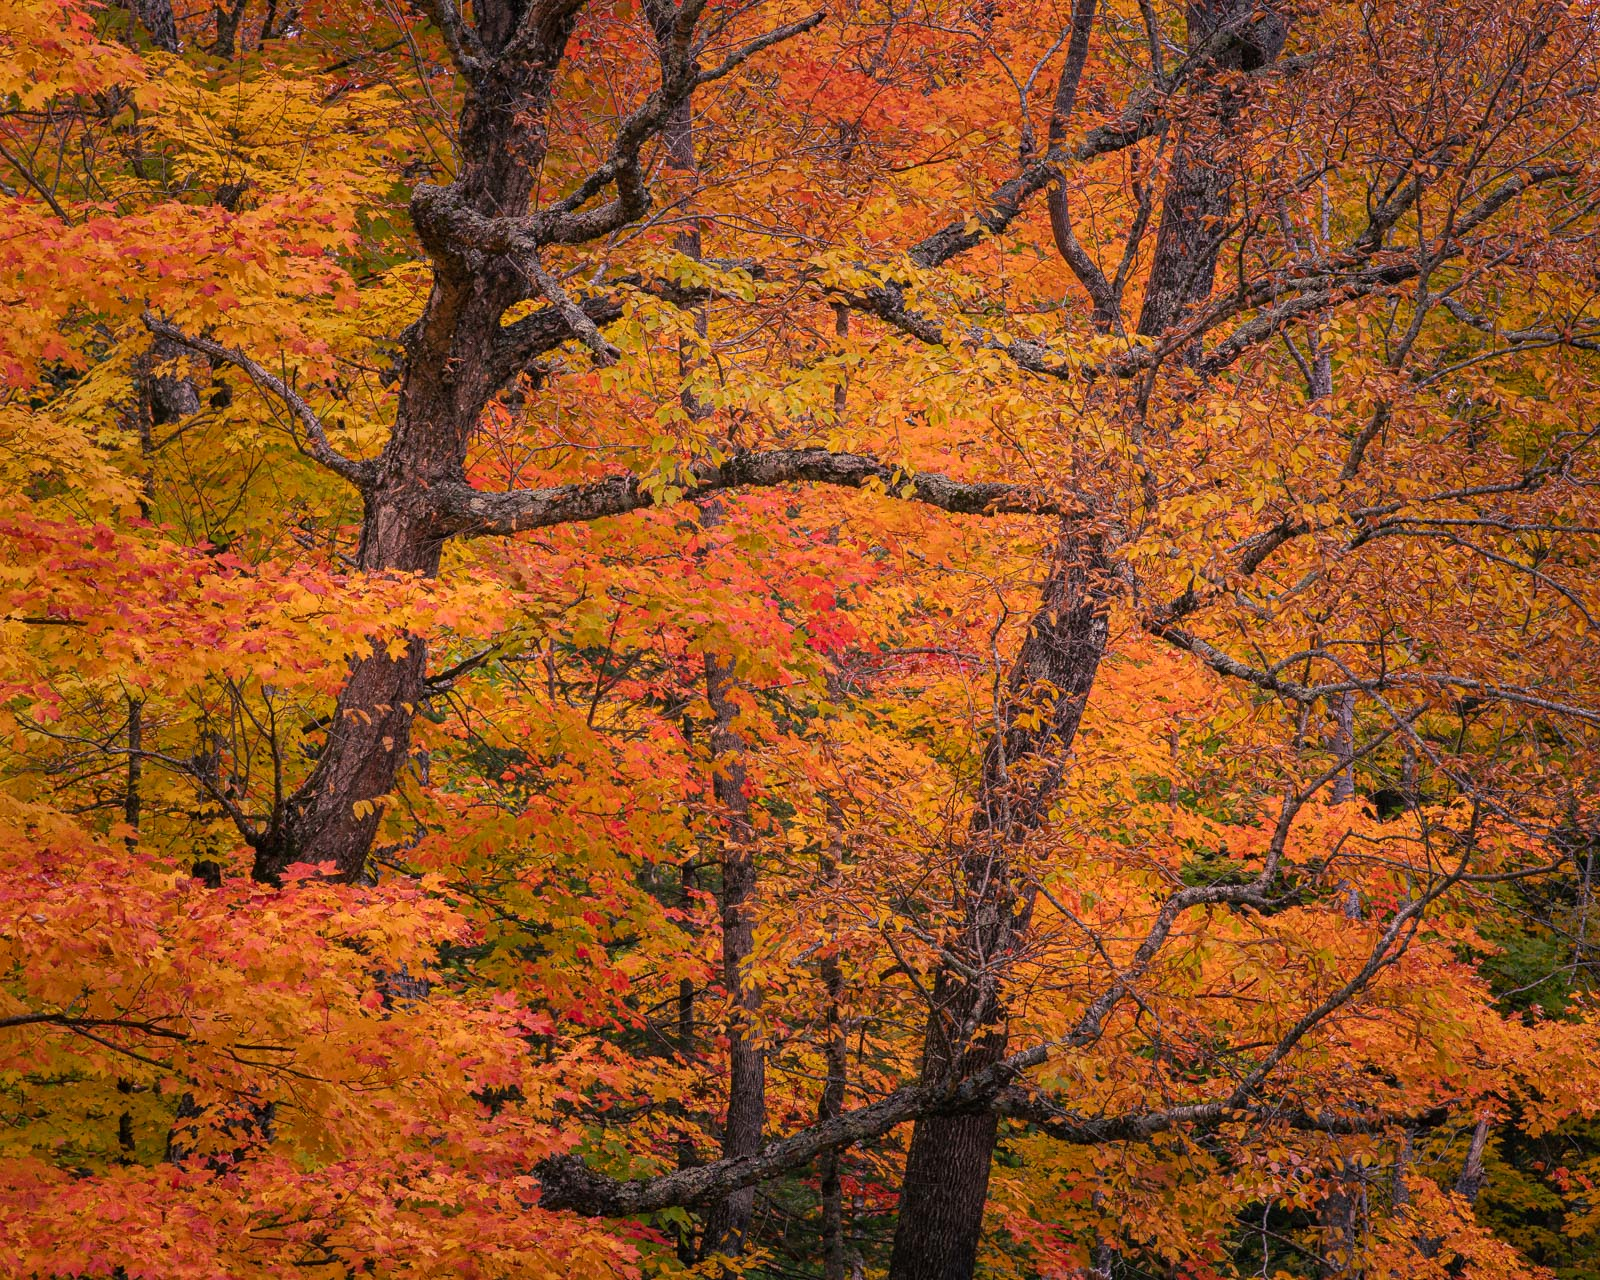 Autumn color in the mountains of New Hampshire near the Swift River in the White Mountains National Forest.